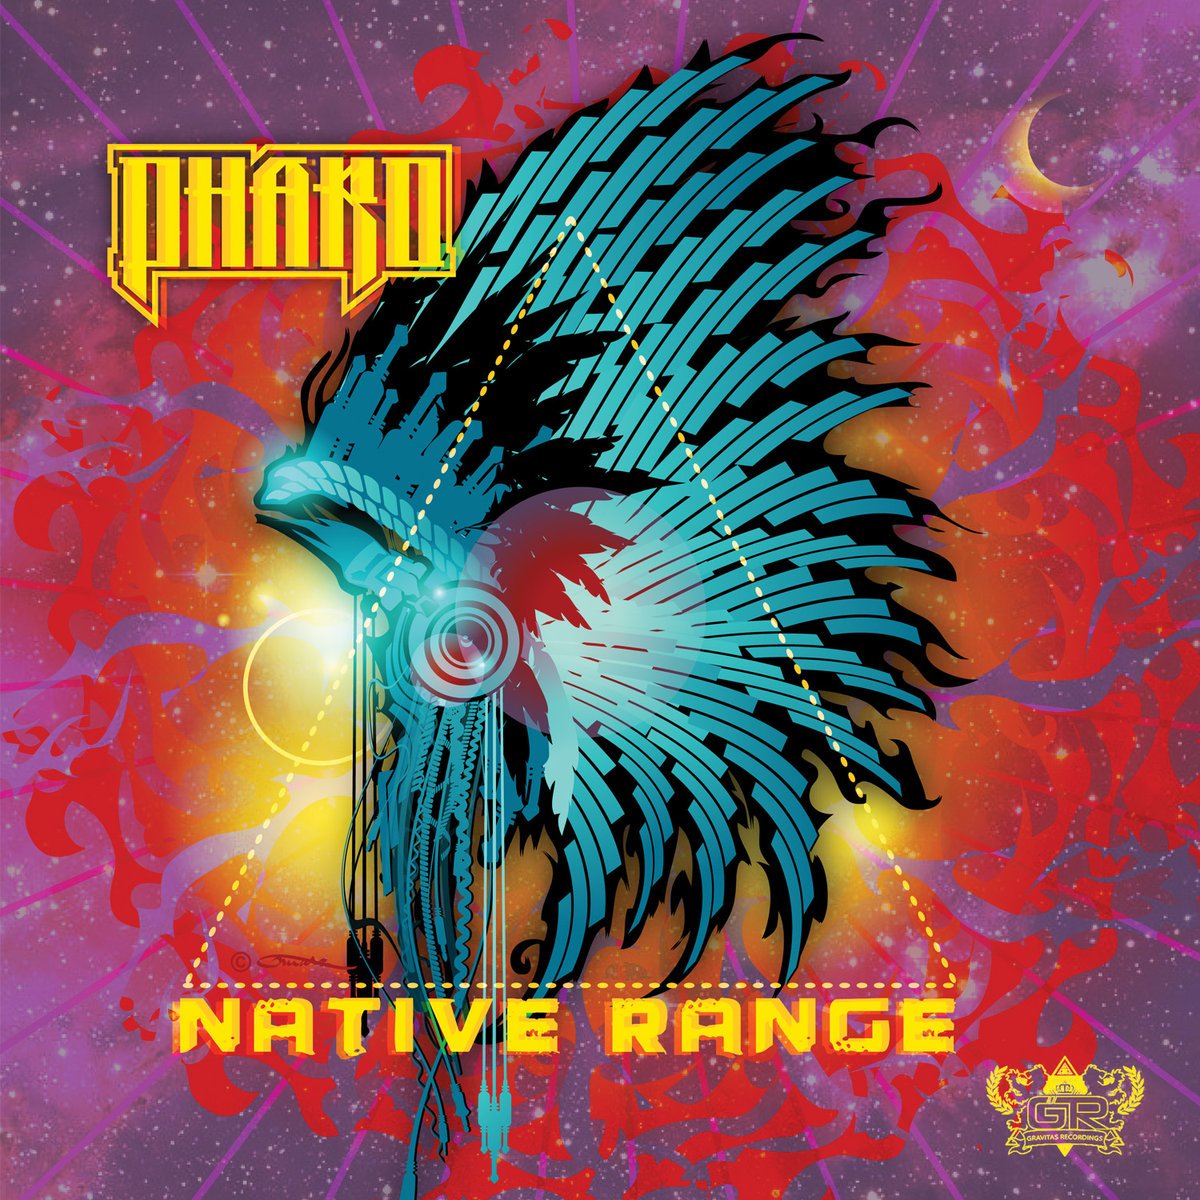 Pharo - Pacman Grind (Omega Remix) @ 'Native Range' album (Austin)